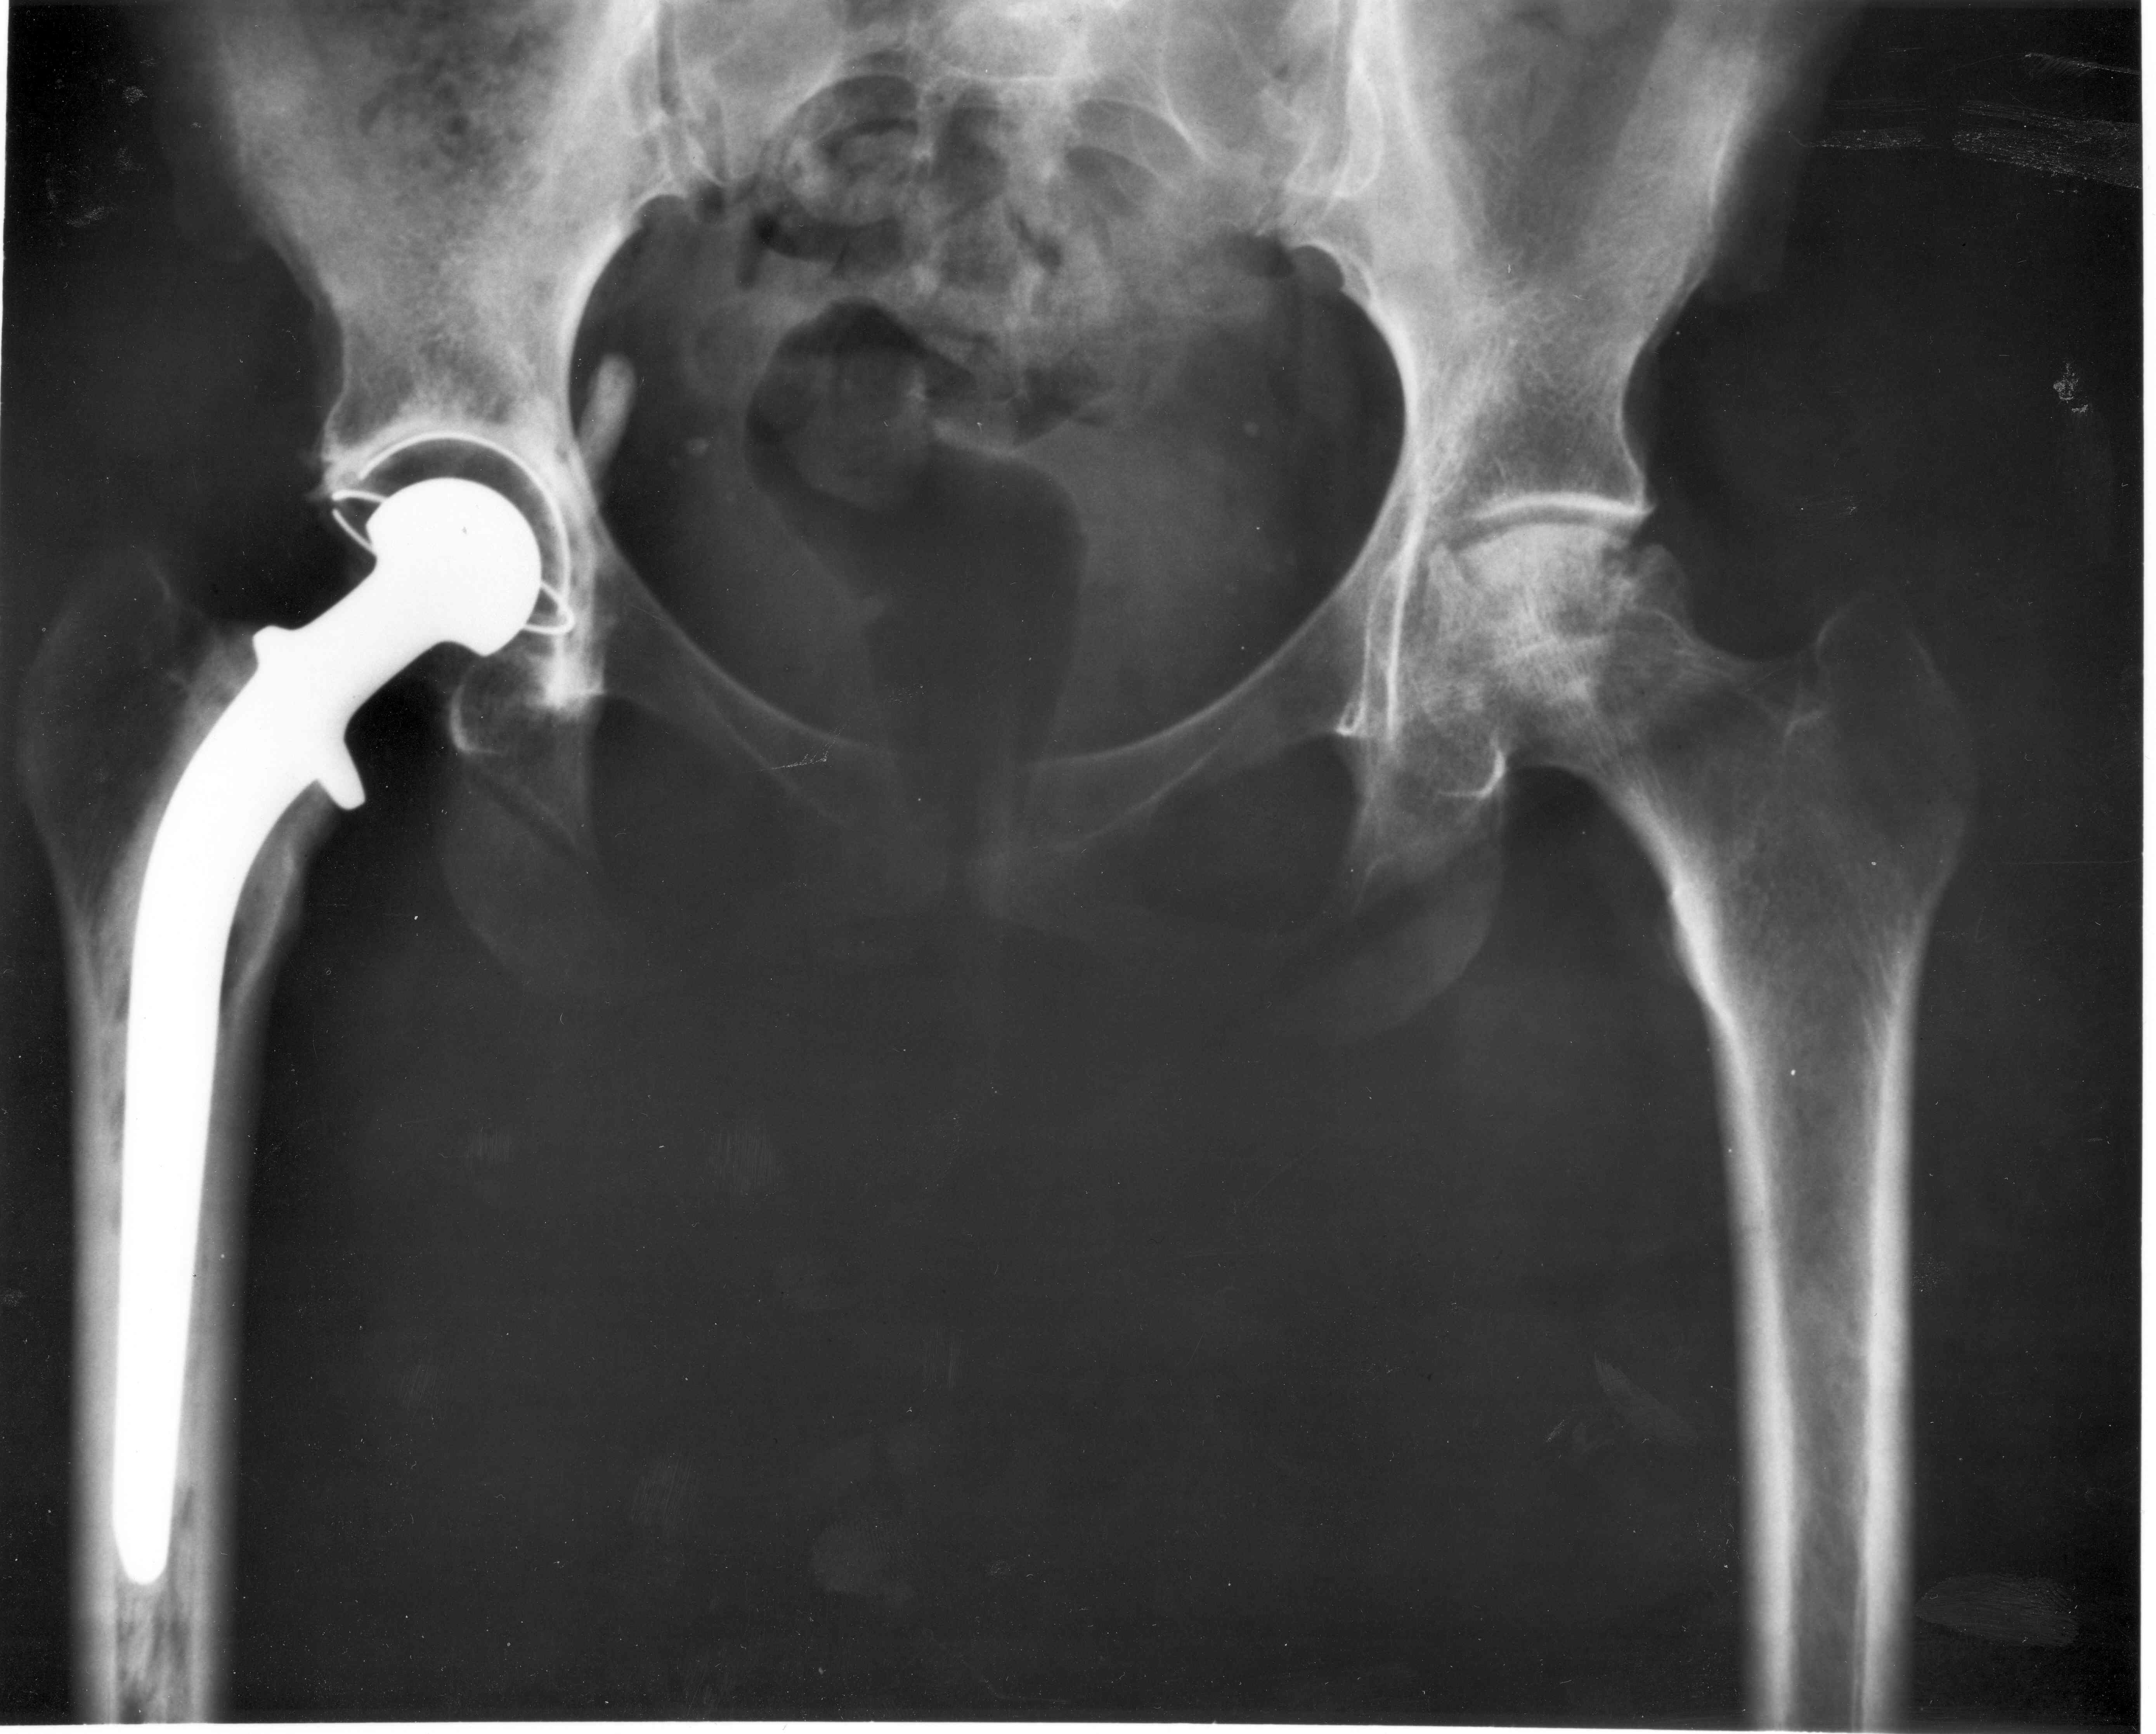 metal hip replacement x ray